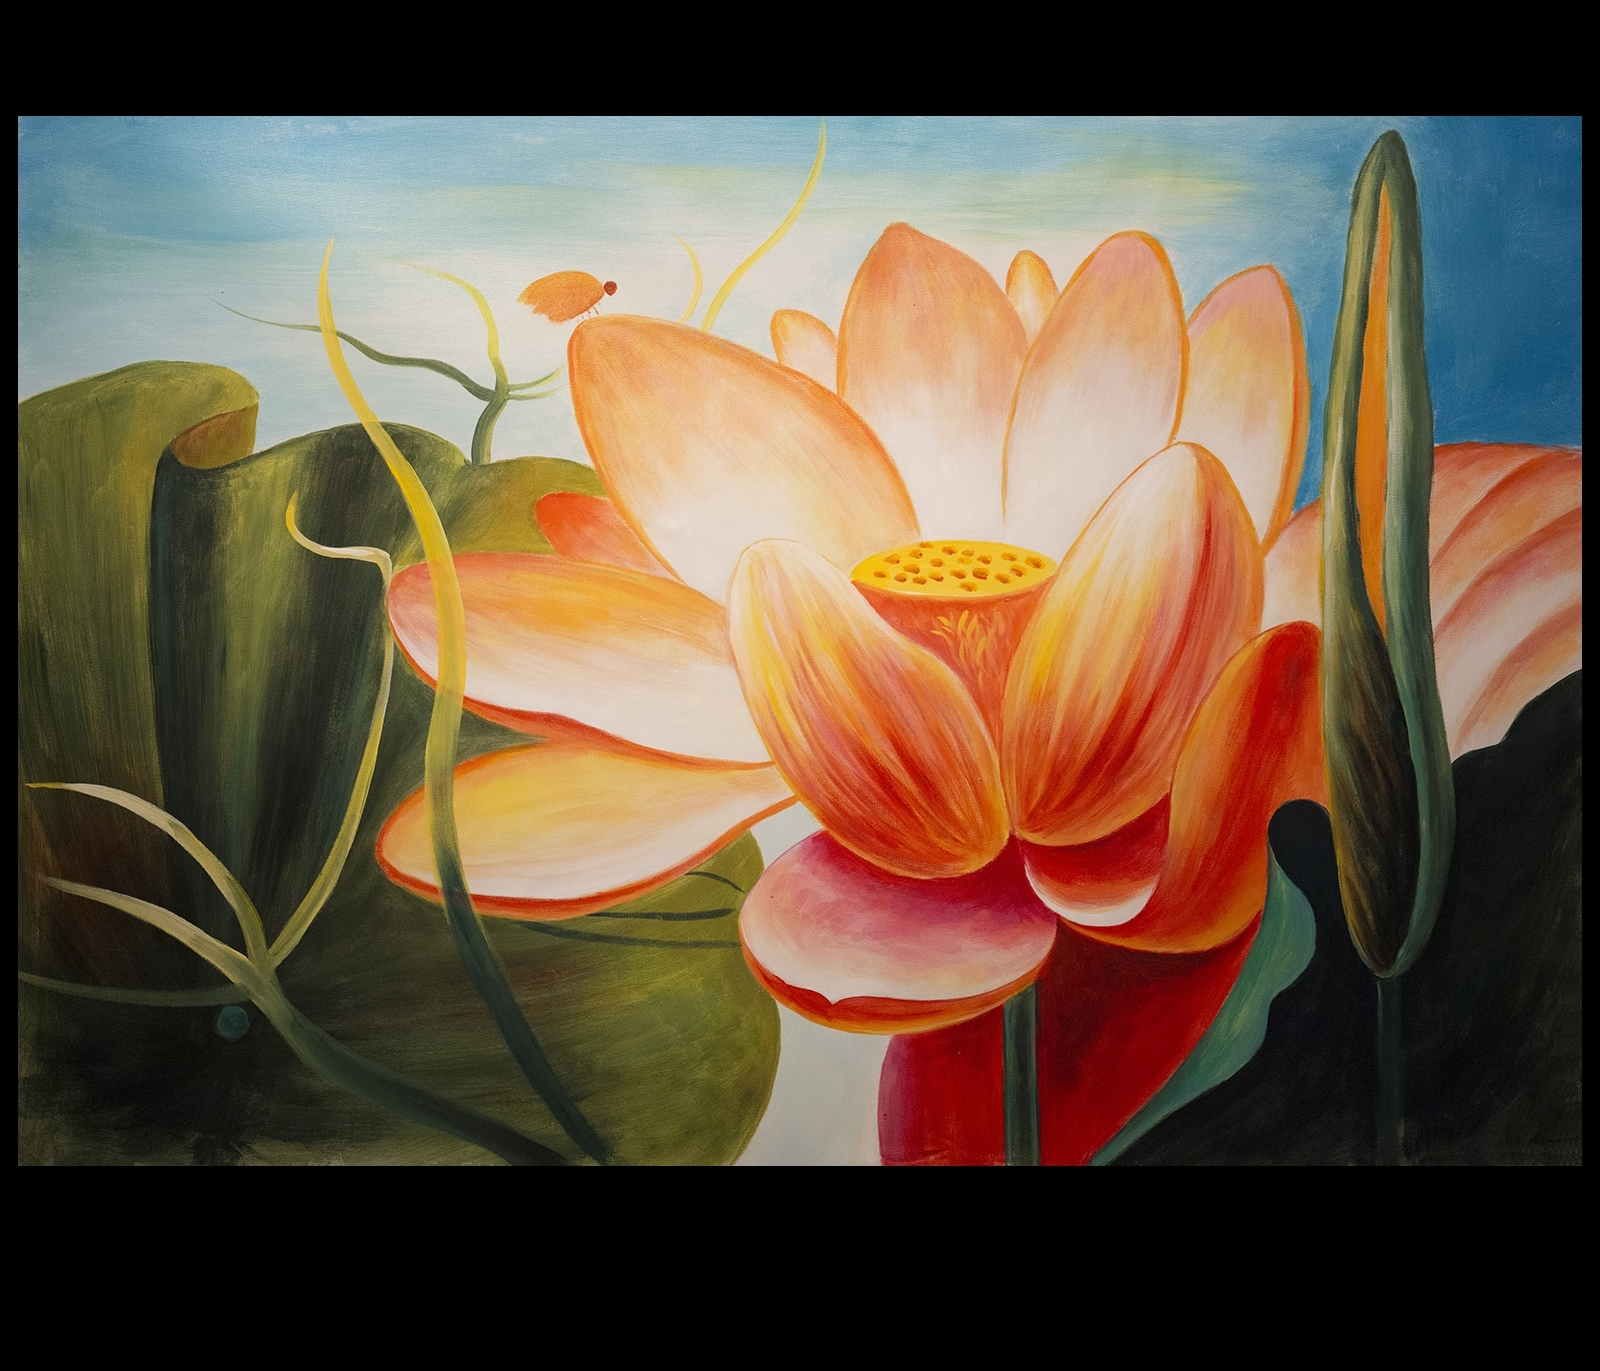 Abstract Flower Painting Lotus Flower Painting Asian Wall Decor With Regard To Best And Newest Abstract Flower Wall Art (View 10 of 20)